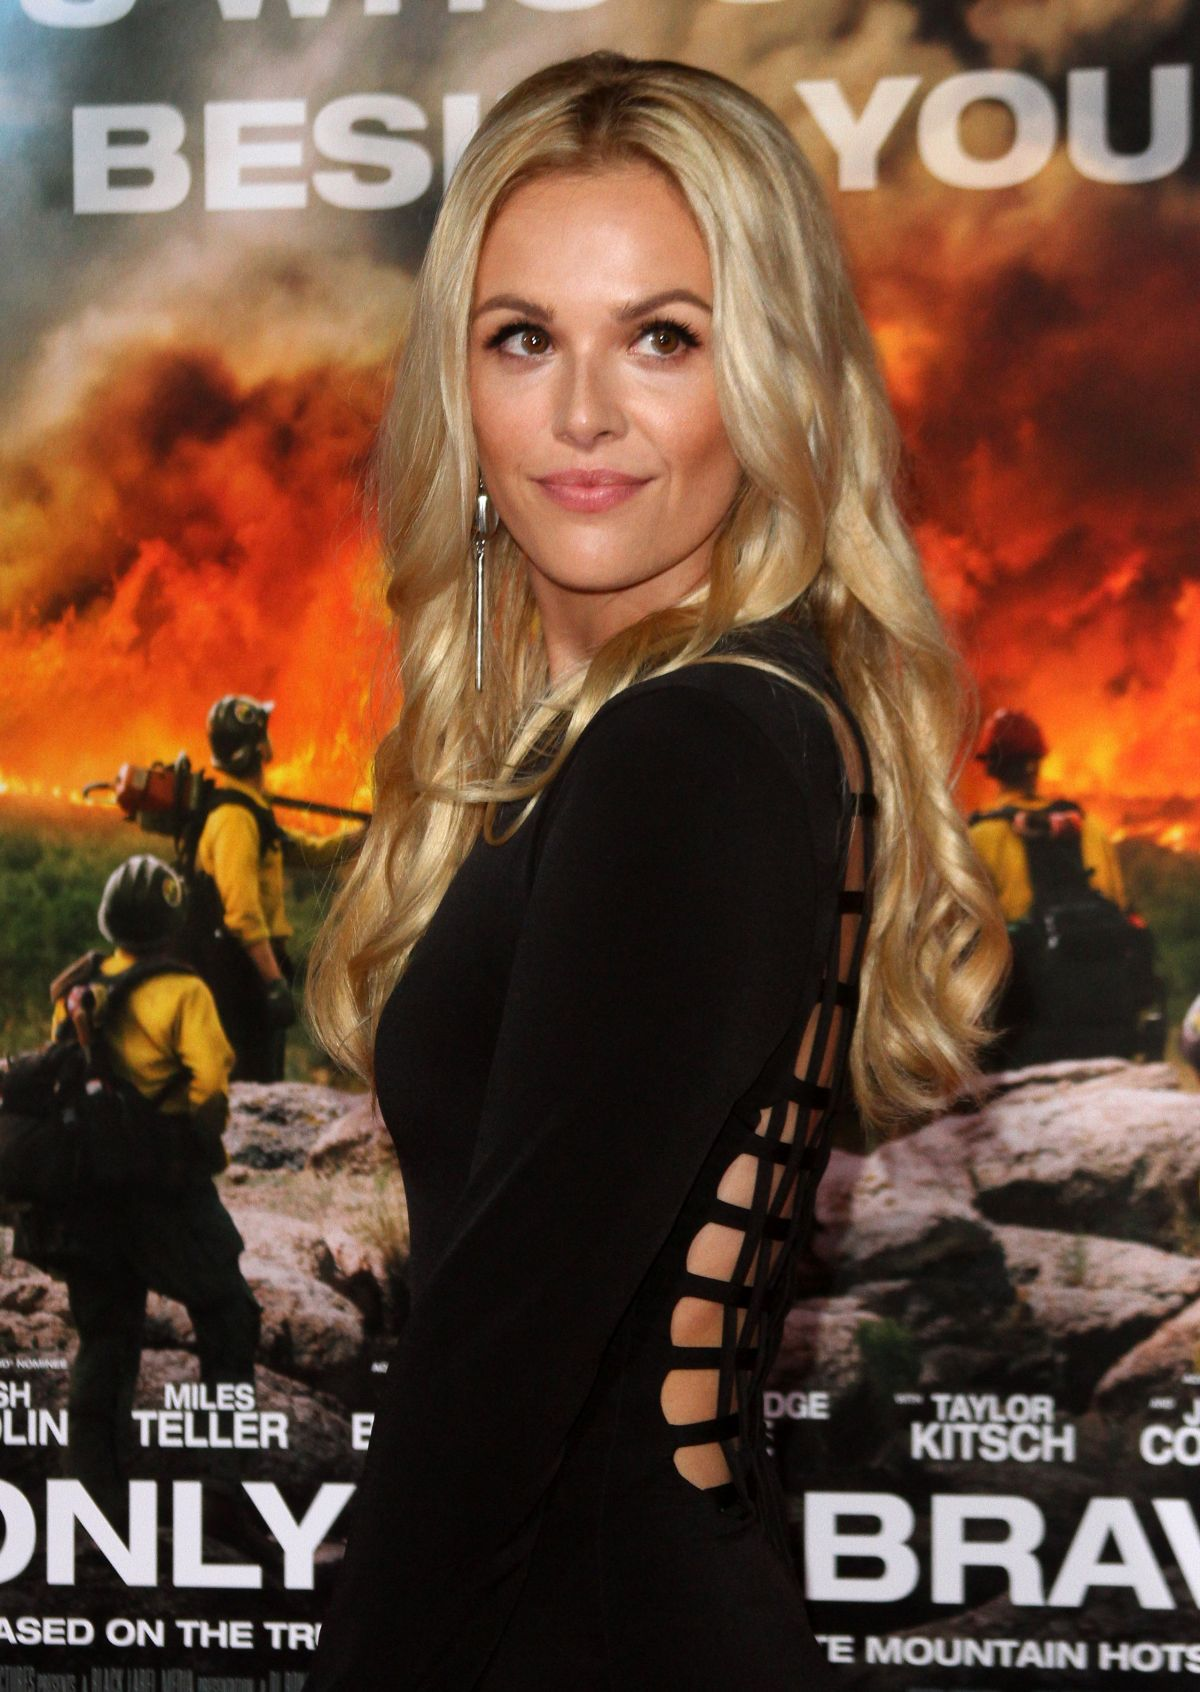 Natalie Hall At 'Only The Brave' film premiere, Los Angeles   natalie-hall-at-only-the-brave-film-premiere-los-angeles-36